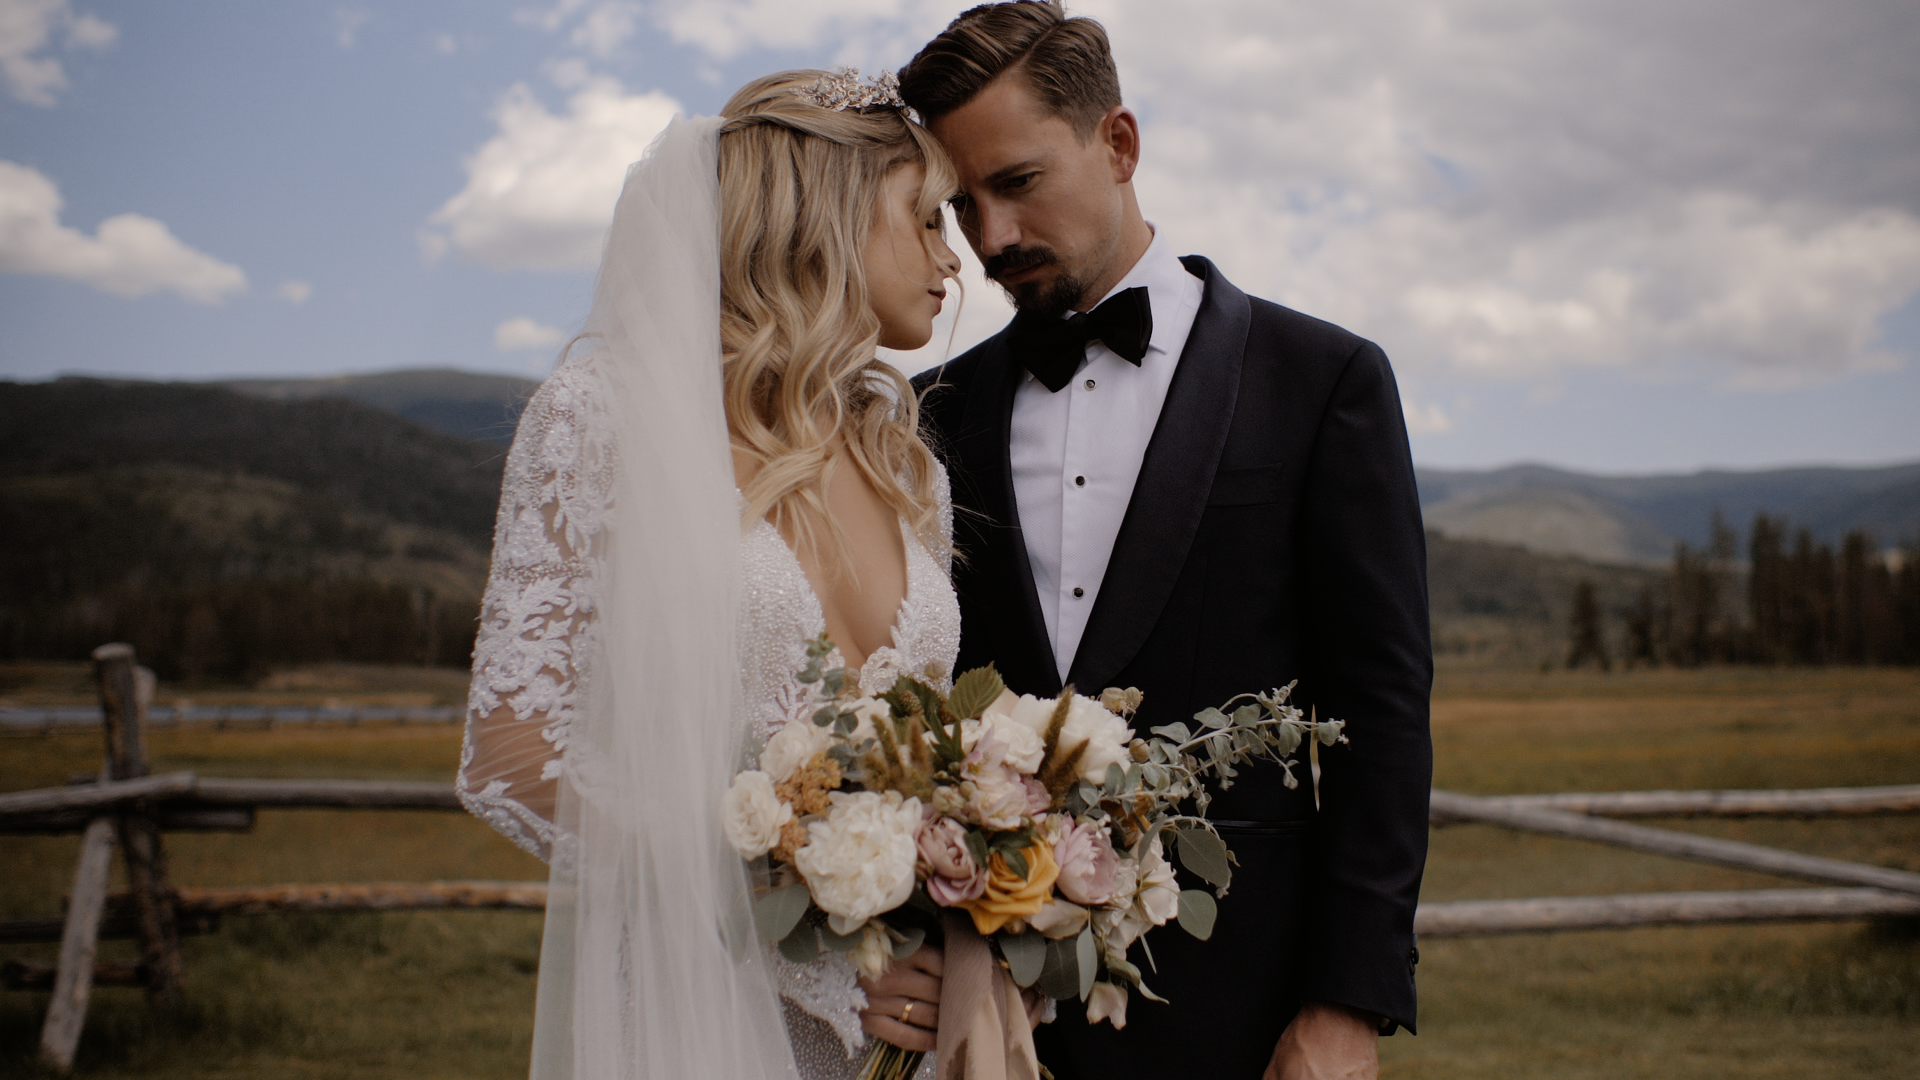 Jennifer + Zachary | Tabernash, Colorado, Colorado | Devil's Thumb Ranch